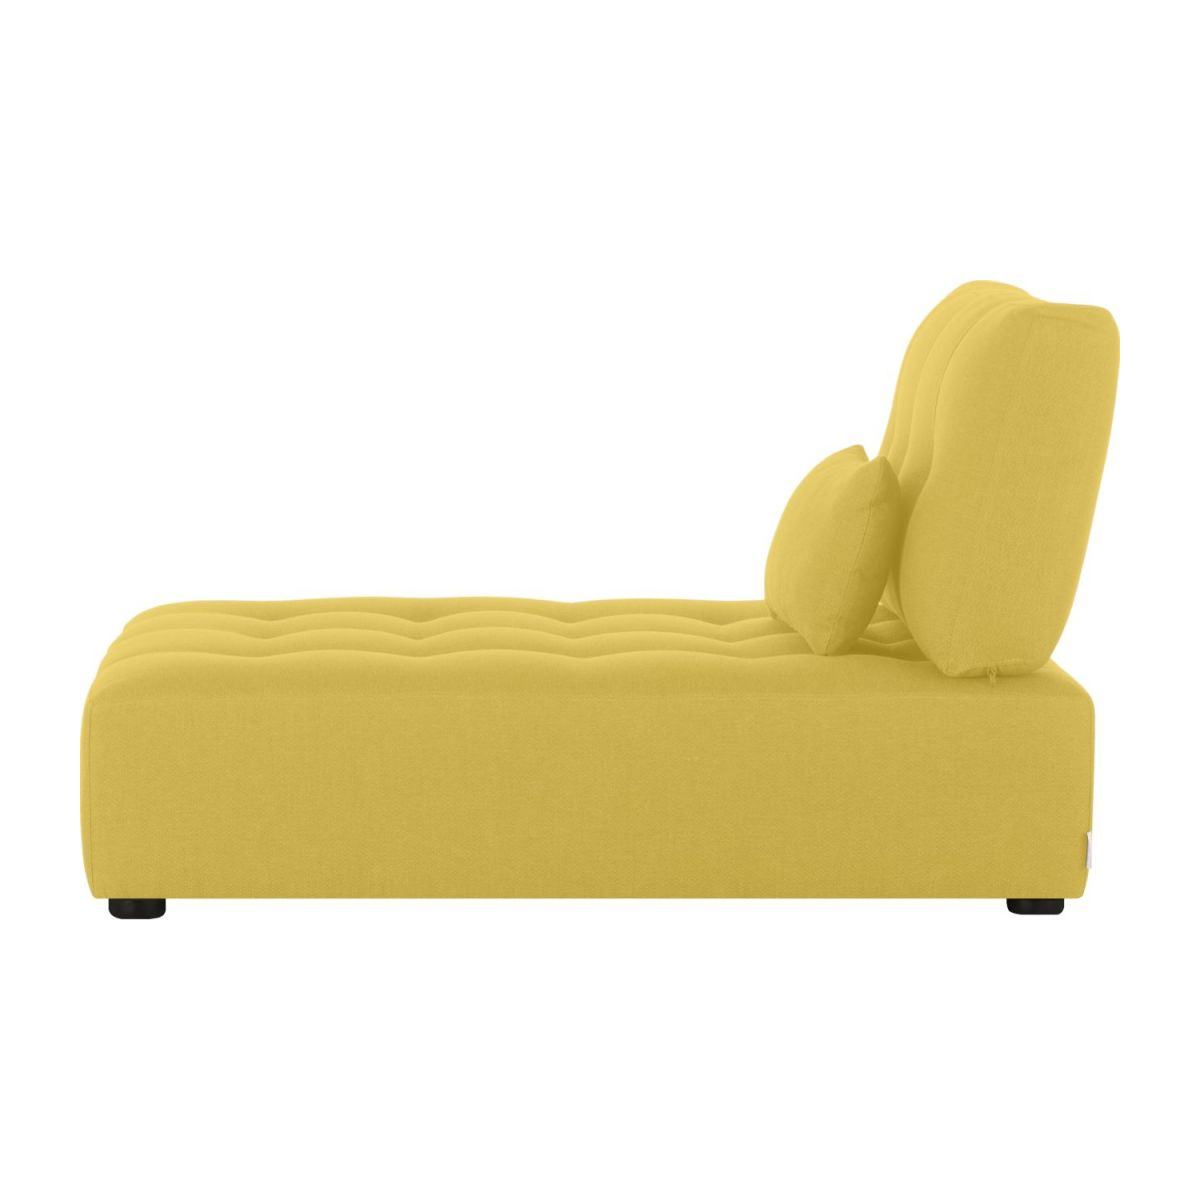 Chaiselongue aus Stoff - Senfgelb n°4